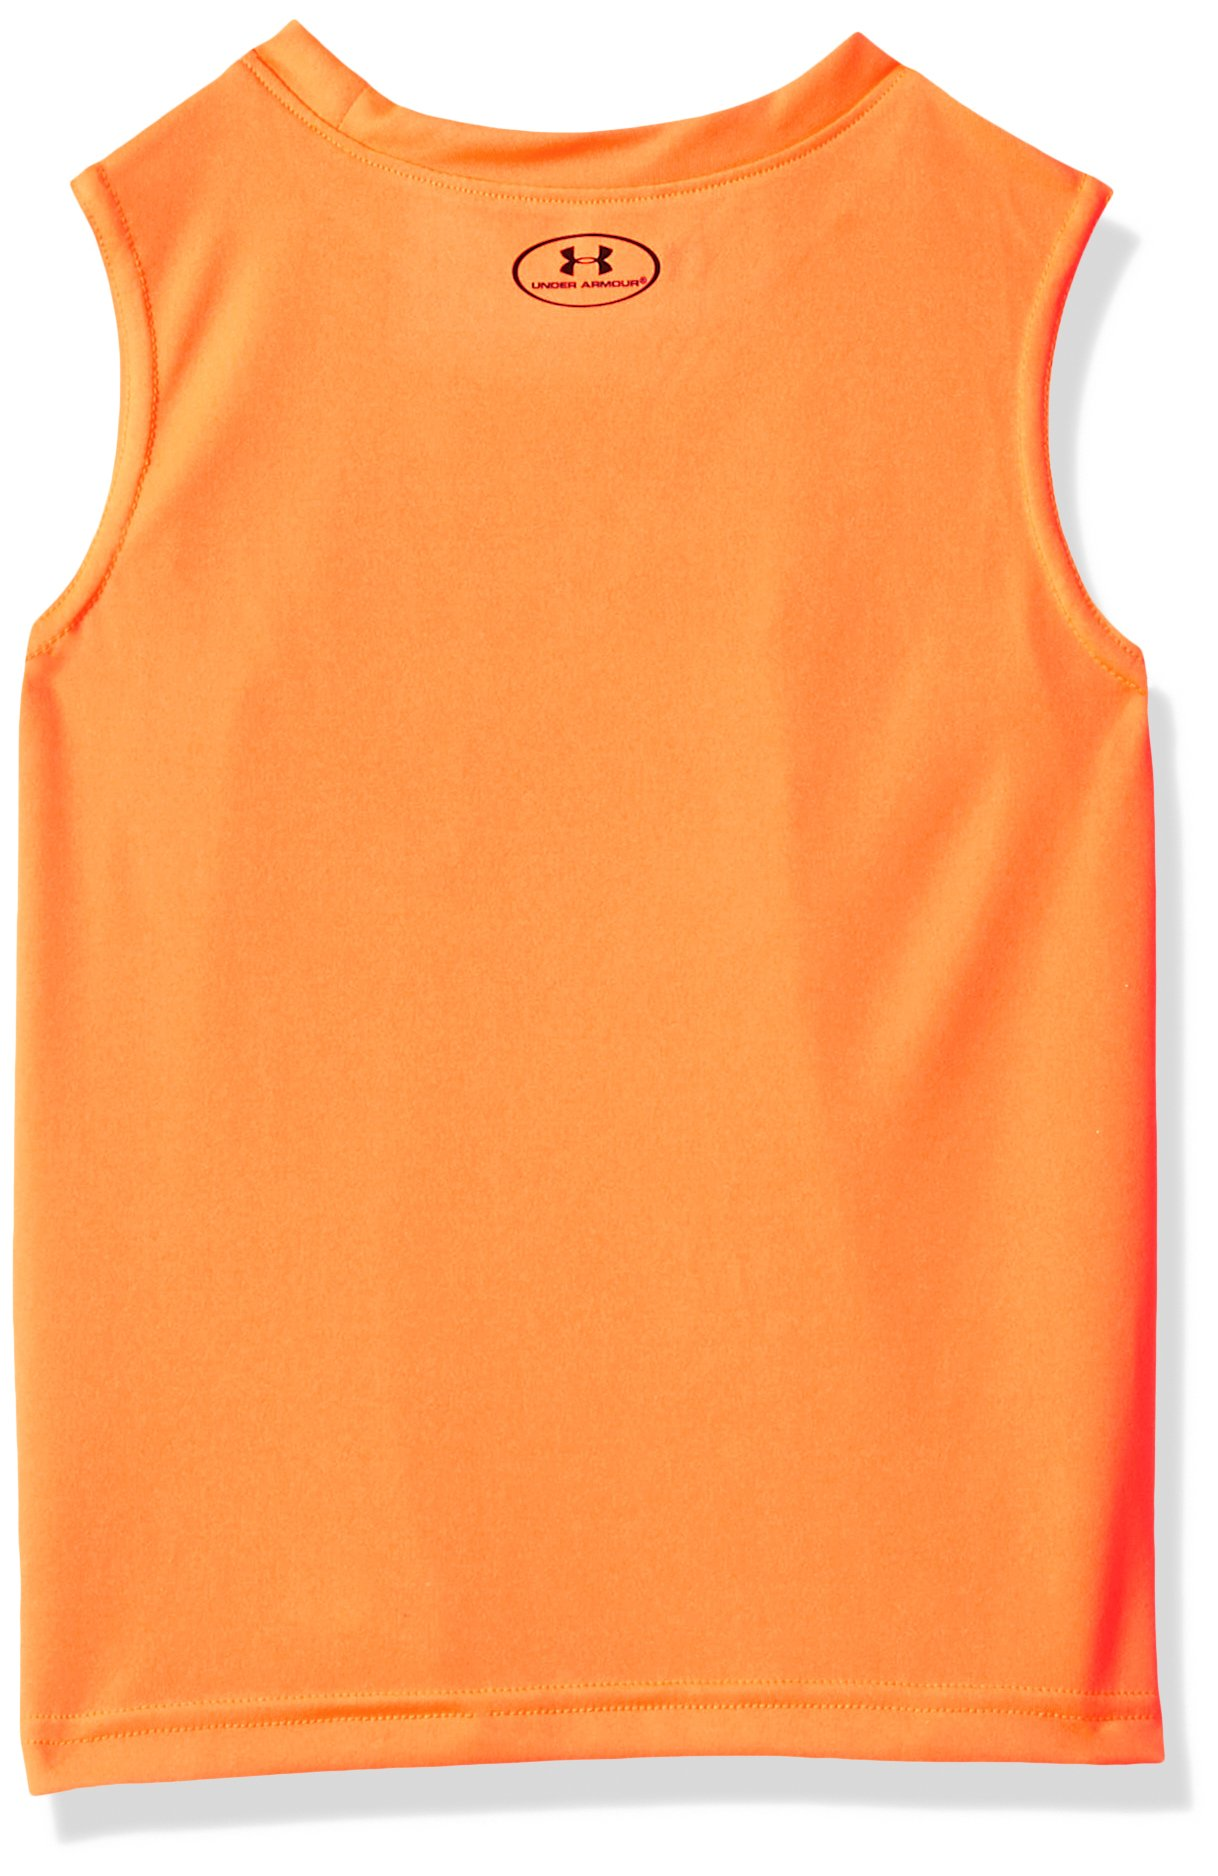 Under Armour Boys' Toddler UA Muscle Tank and Short Set, Magma Orange, 2T by Under Armour (Image #2)